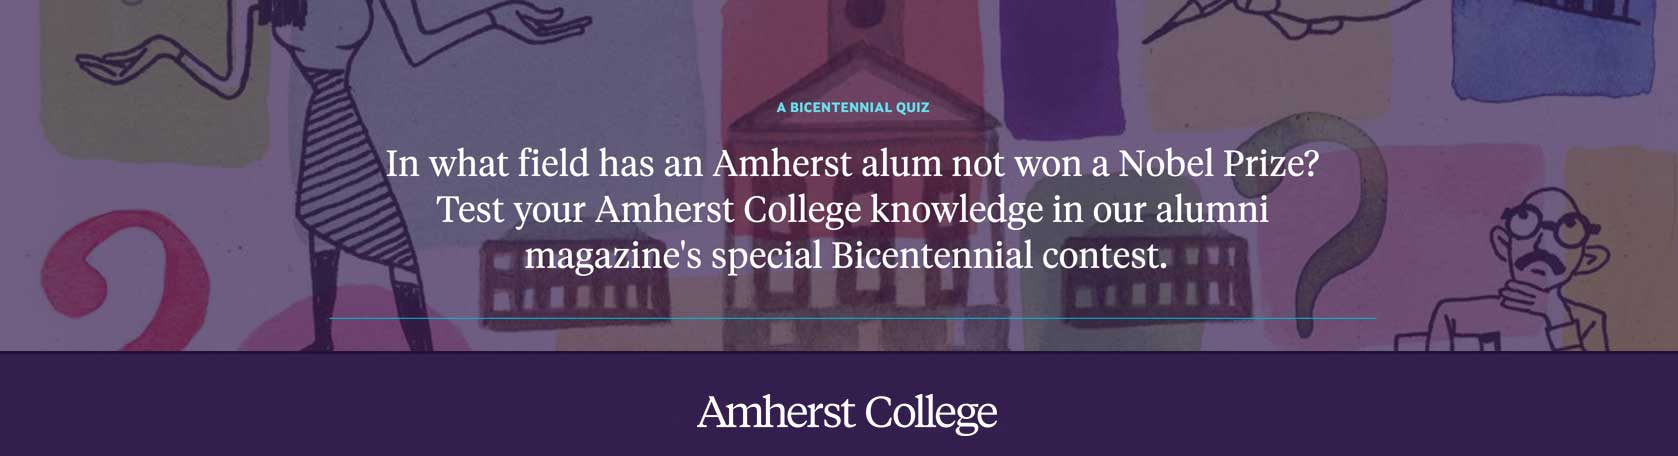 Test Your Amherst College knowledge